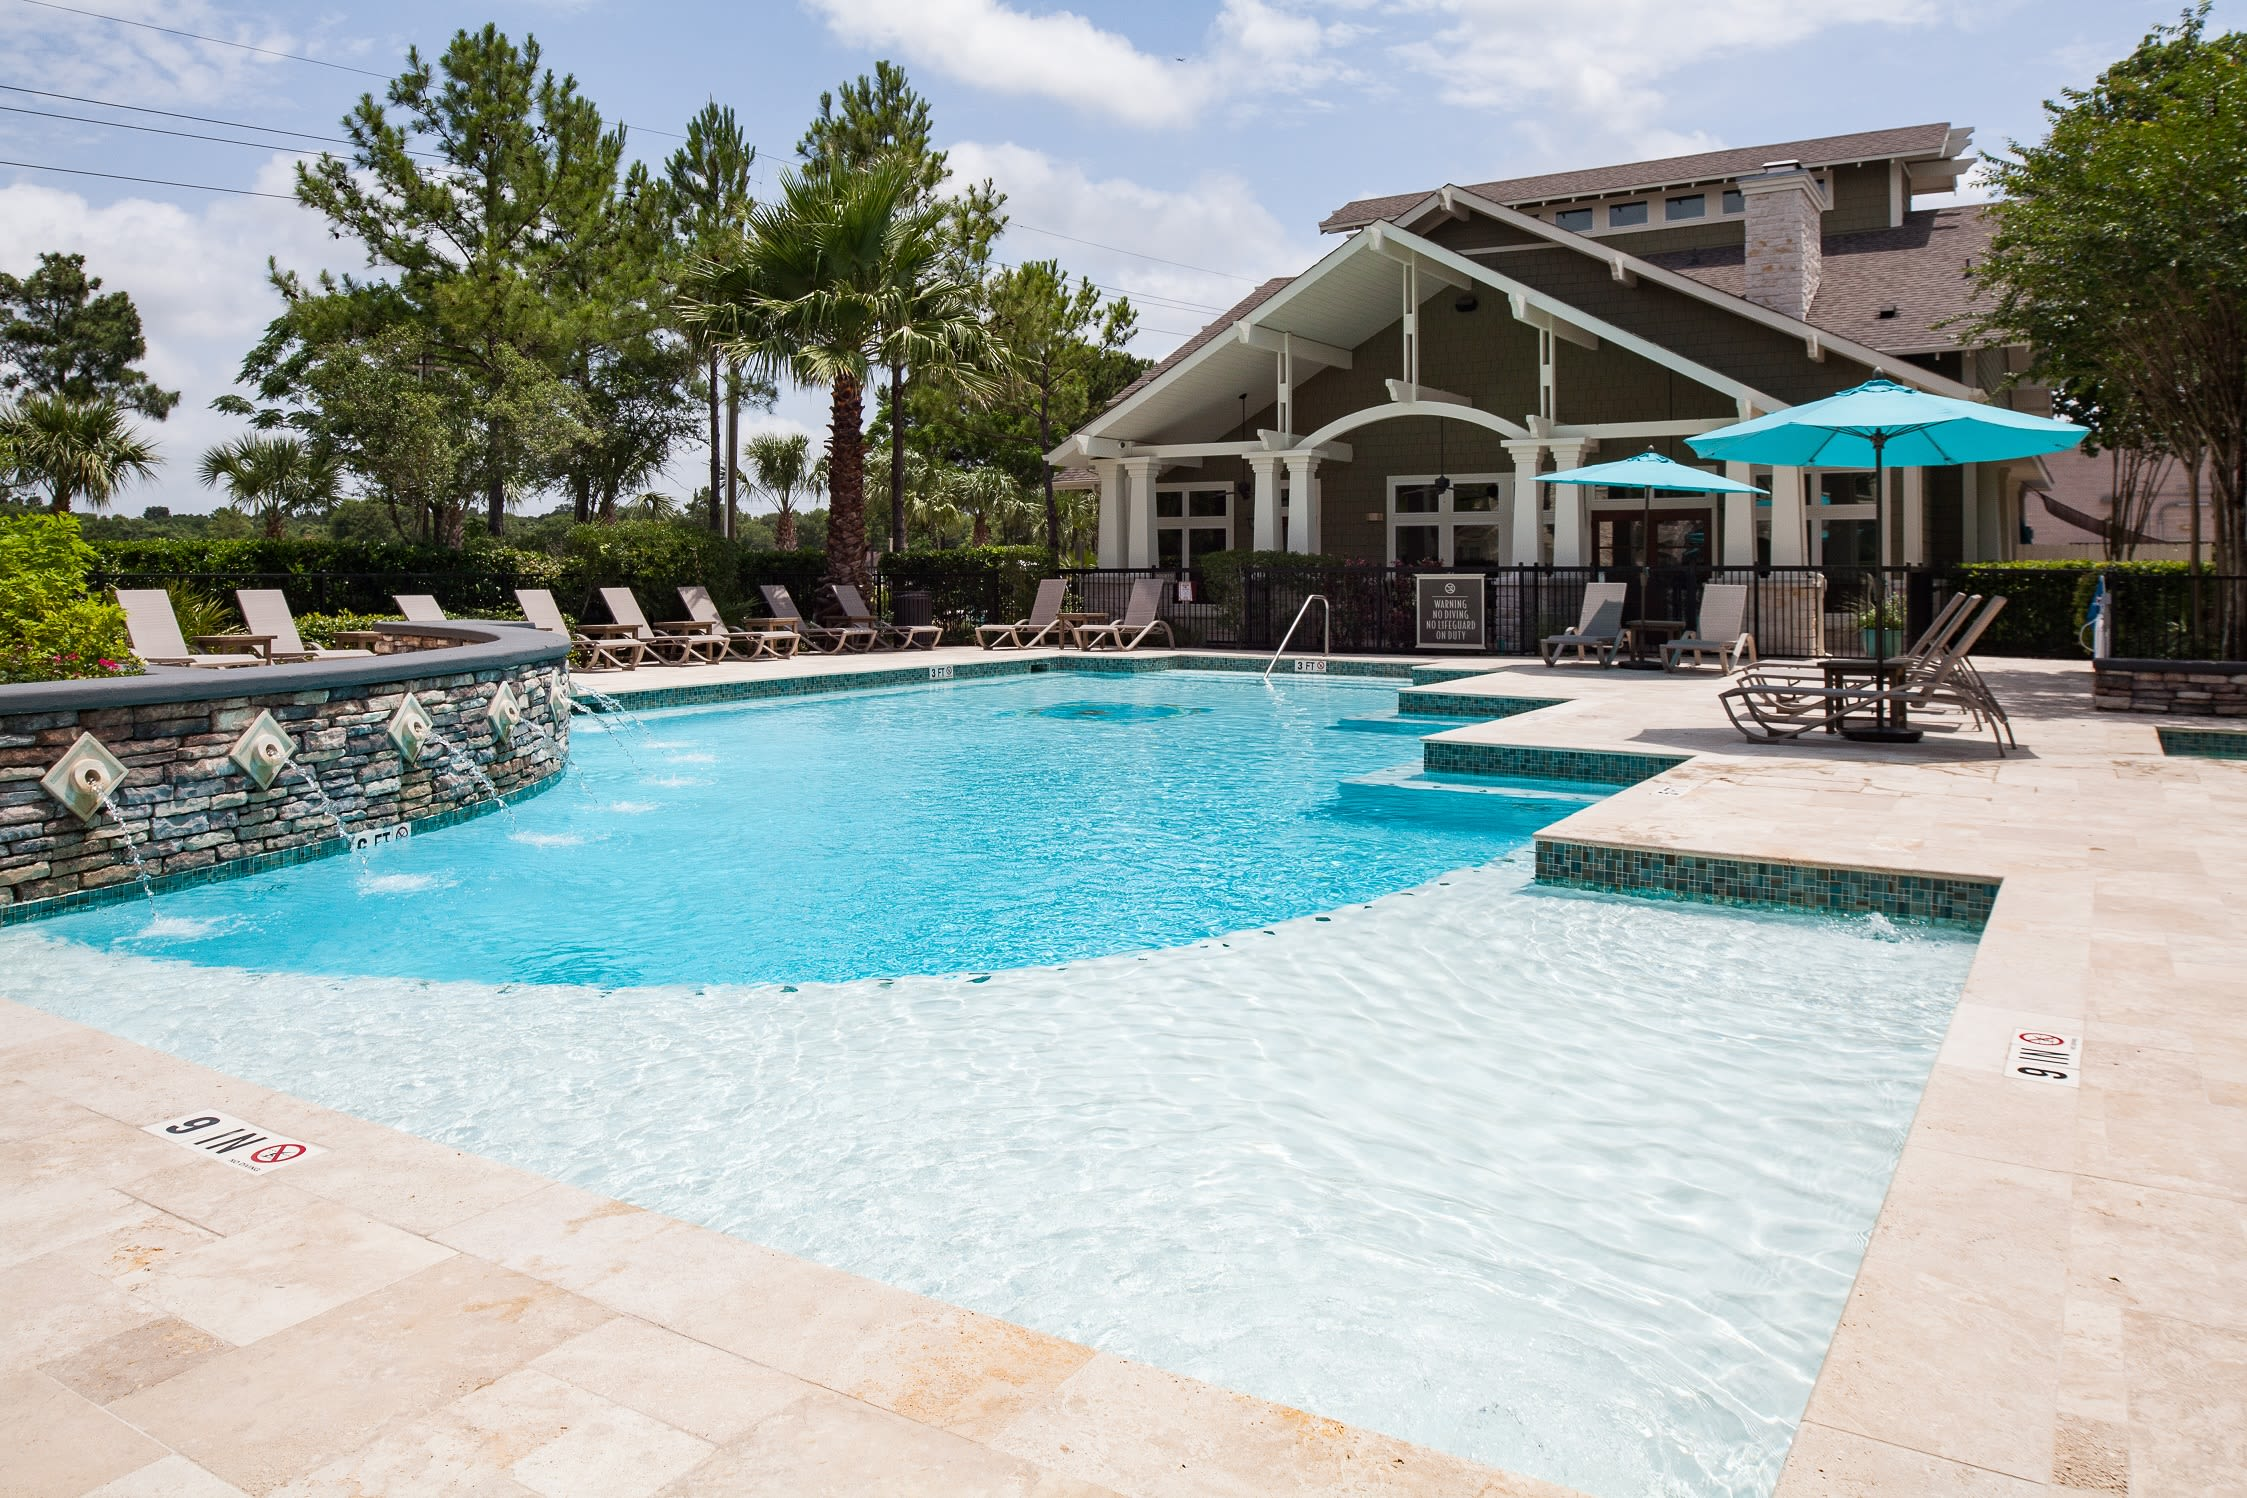 Outdoor pool at Lakefront Villas in Houston, Texas